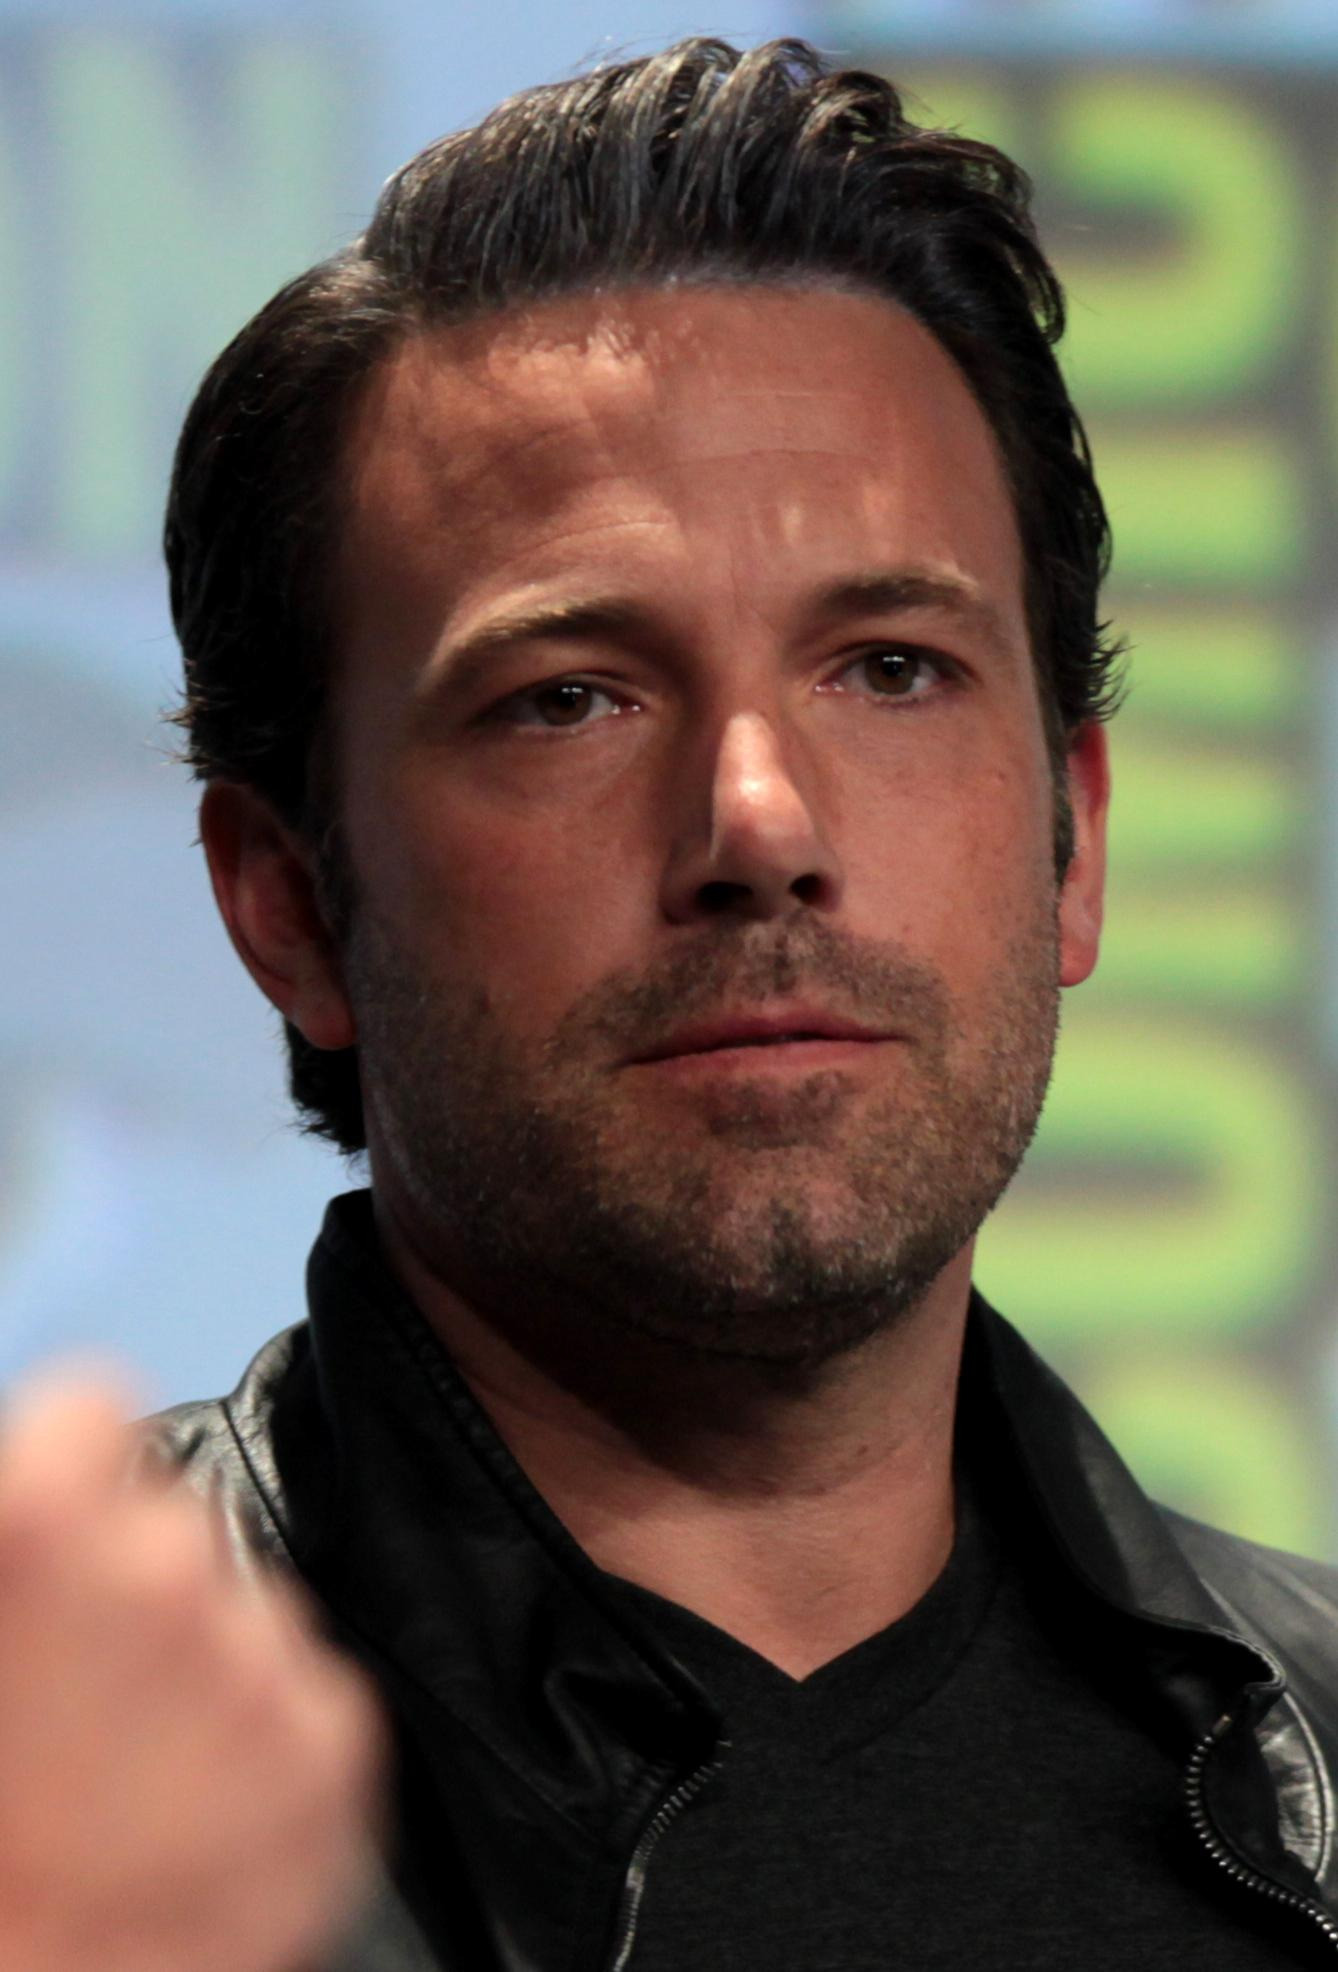 Ben Affleck And Jennifer Garner Divorcing Due To His Cheating Ben Affleck